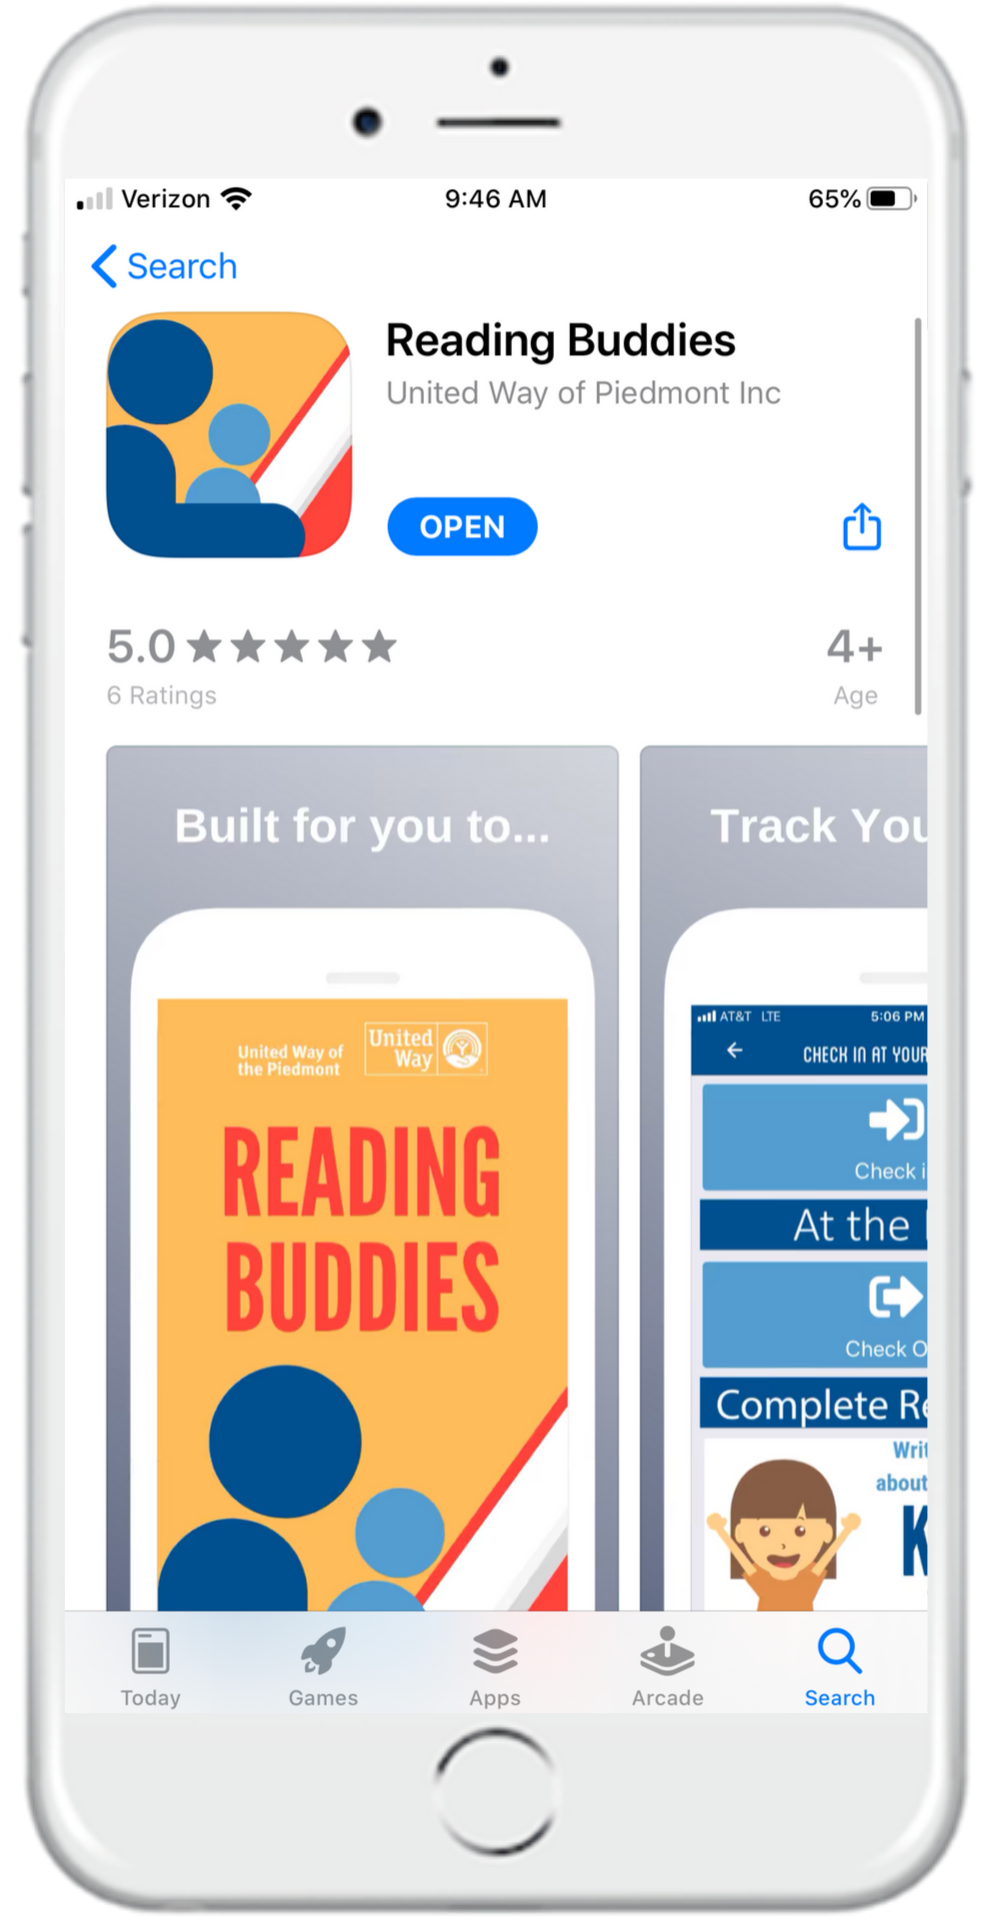 Find Reading Buddies in the app store and download